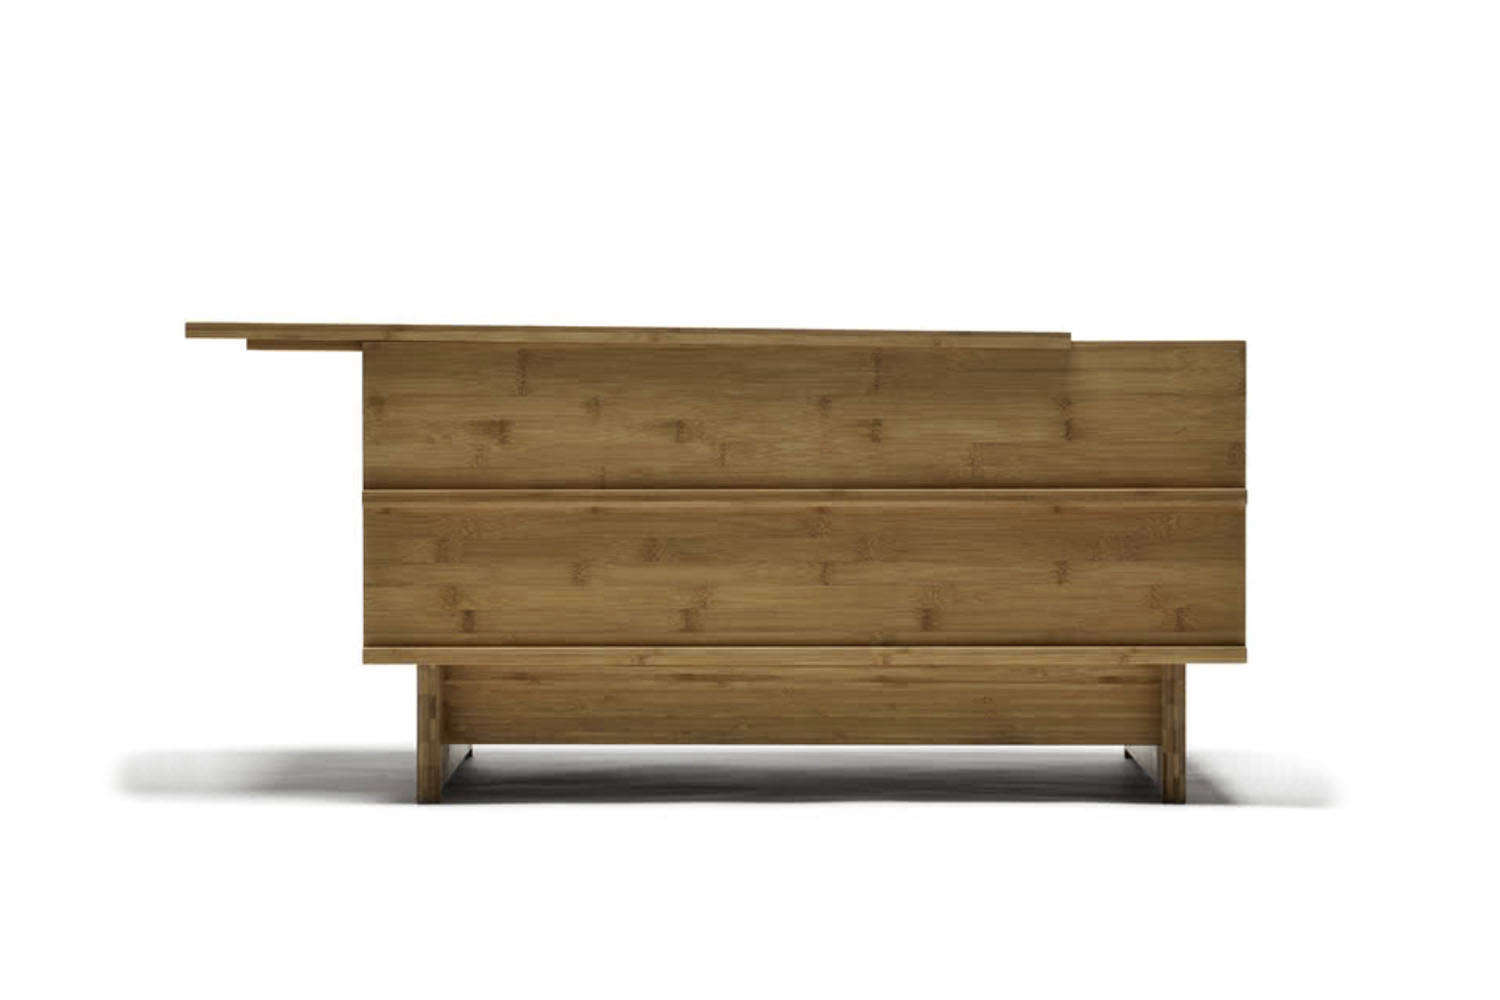 From We Do Wood, the Correlations Bench is designed to be used as a bench or as a side table. The removable top and the rest of the bench are made of bamboo; $56